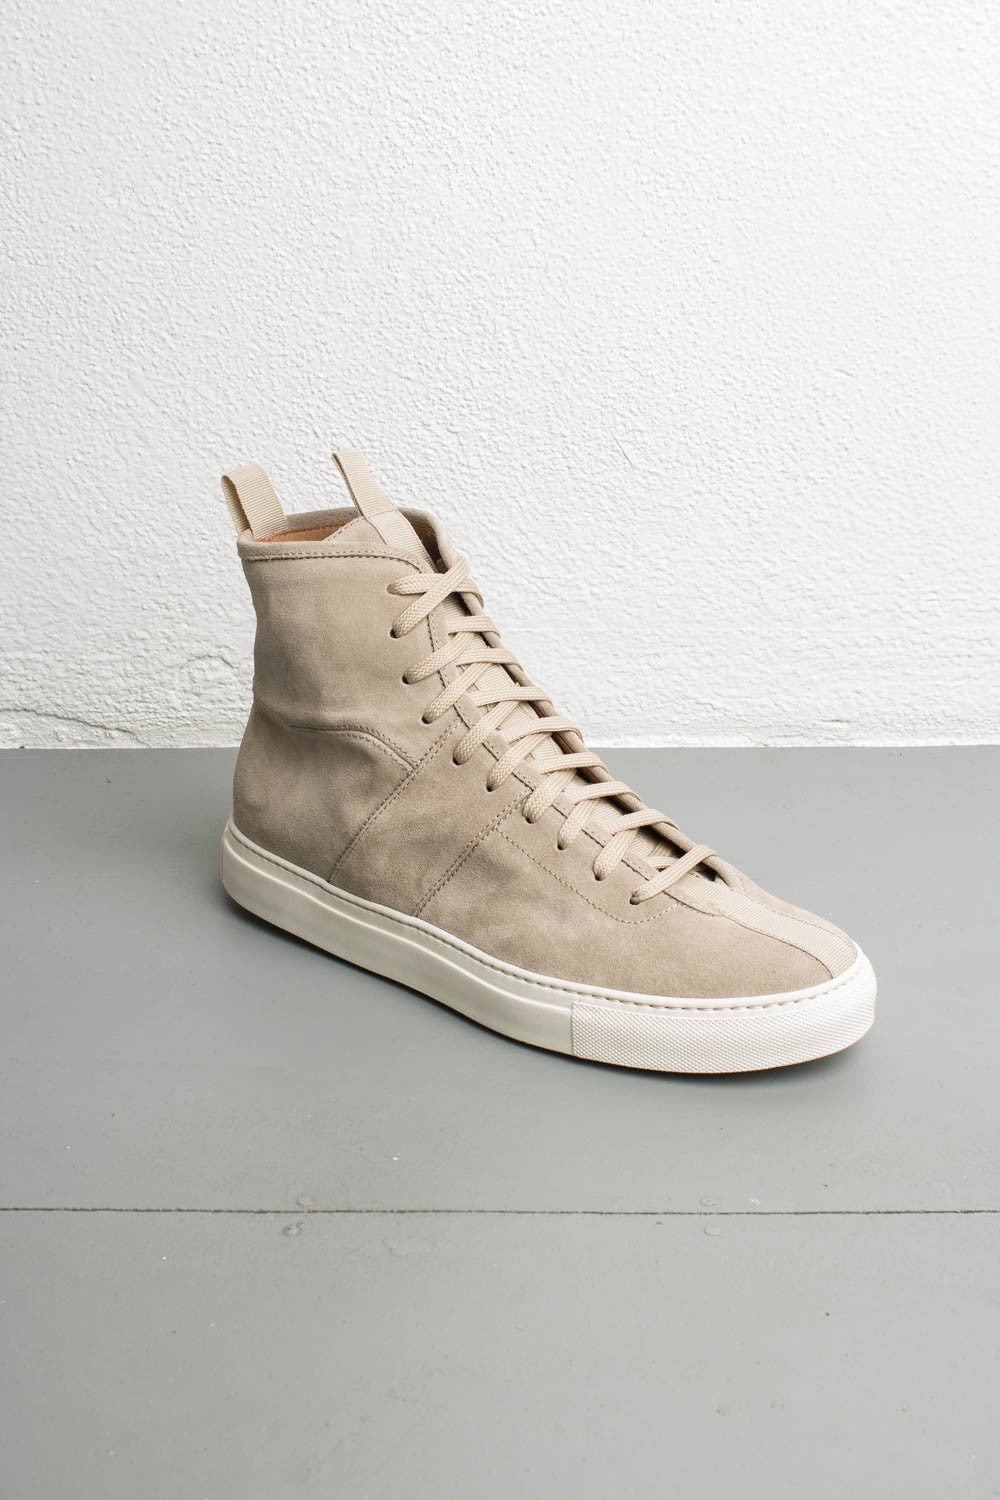 the best attitude f3b1a 2b8fd high top roamer | sand